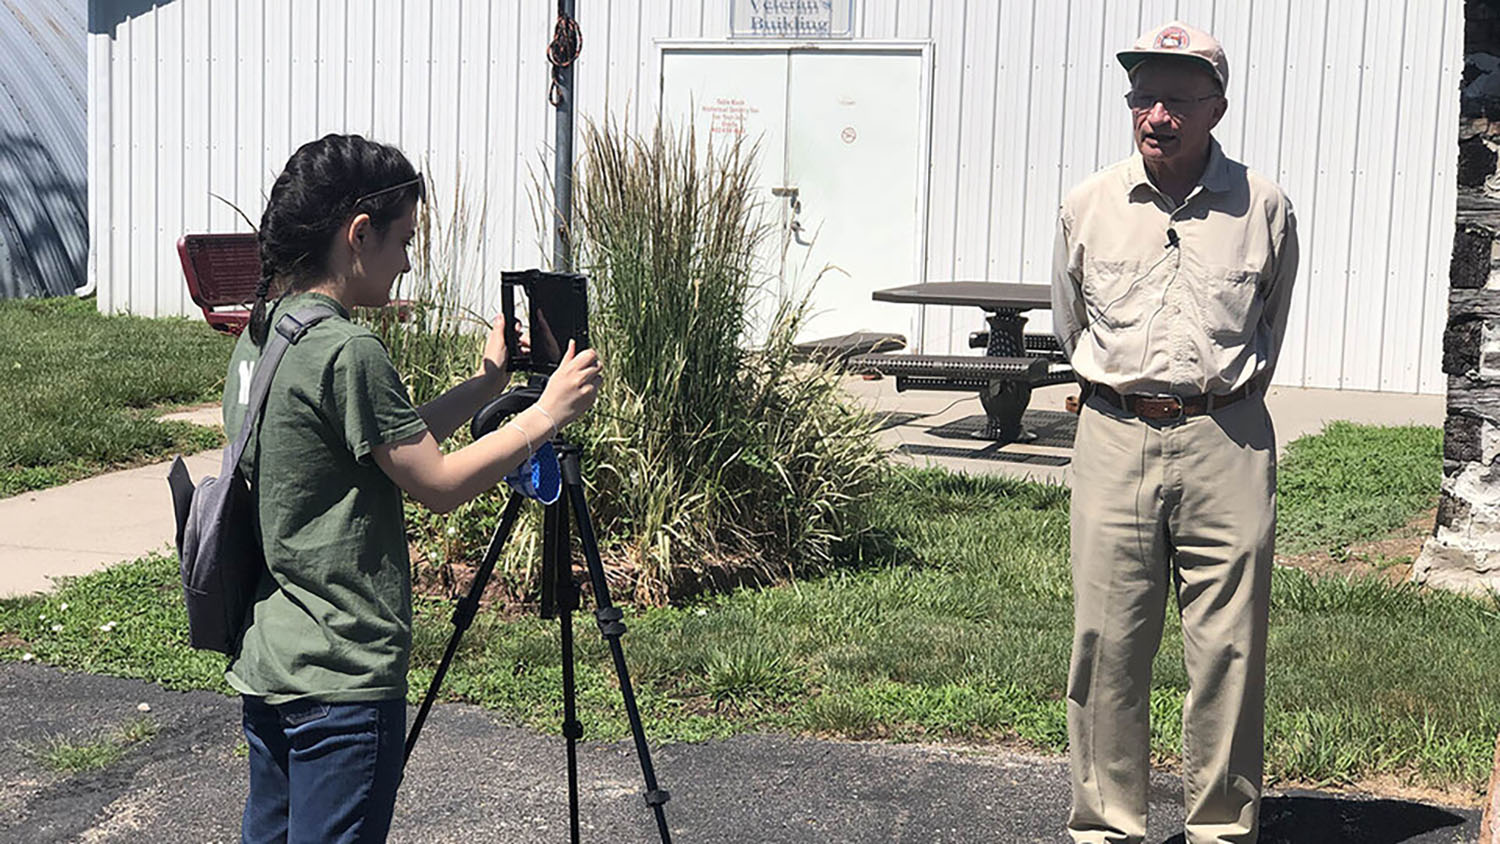 Rachel Williss, a junior agricultural and environmental sciences communication major at UNL, photographs Robert Diffendal, professor emeritus in the School of Natural Resources, during her fellowship this summer in Pawnee County.